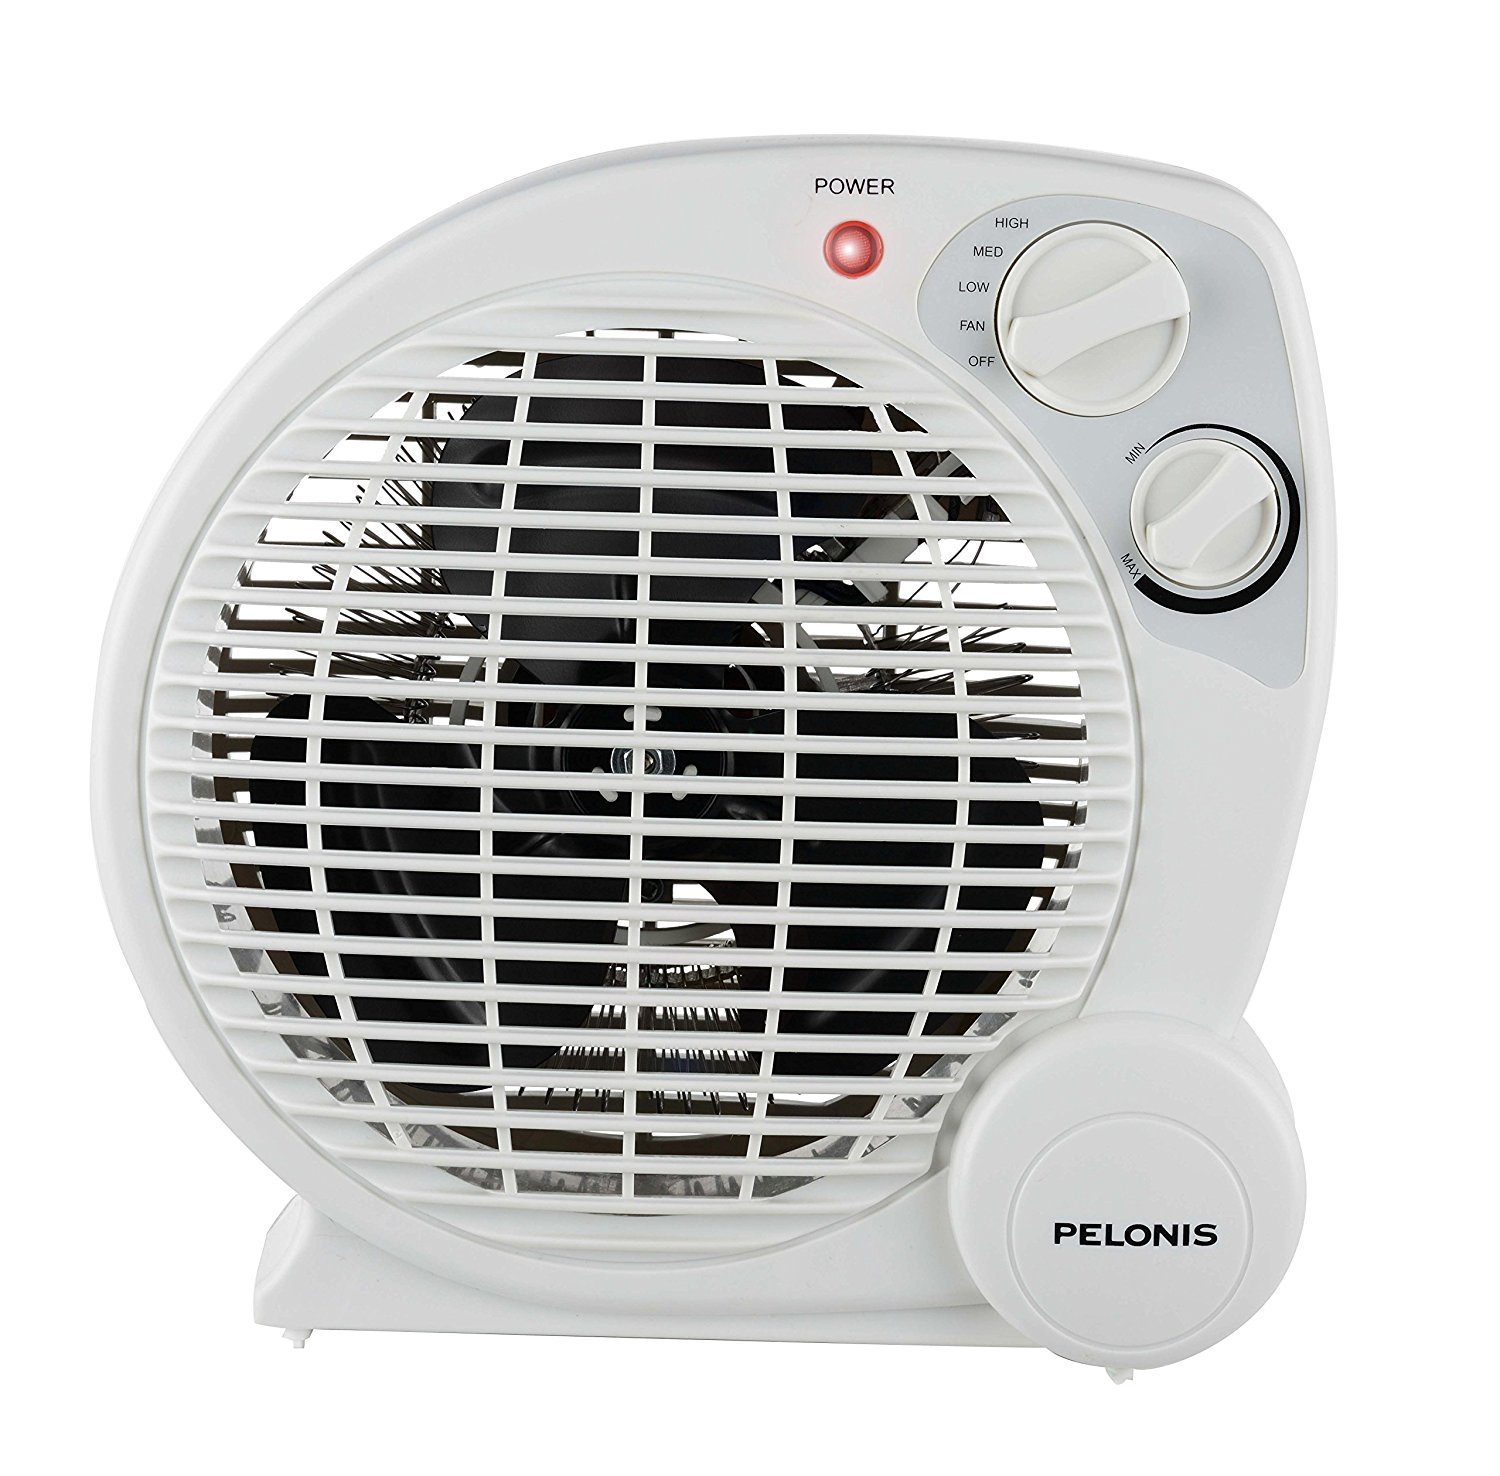 PELONIS HB-211T Portable Space Heater Model with Automatic Safety Shutoff & Energy Efficient Temperature Control 3 Heat Settings (600 W/900 W/1500 W)